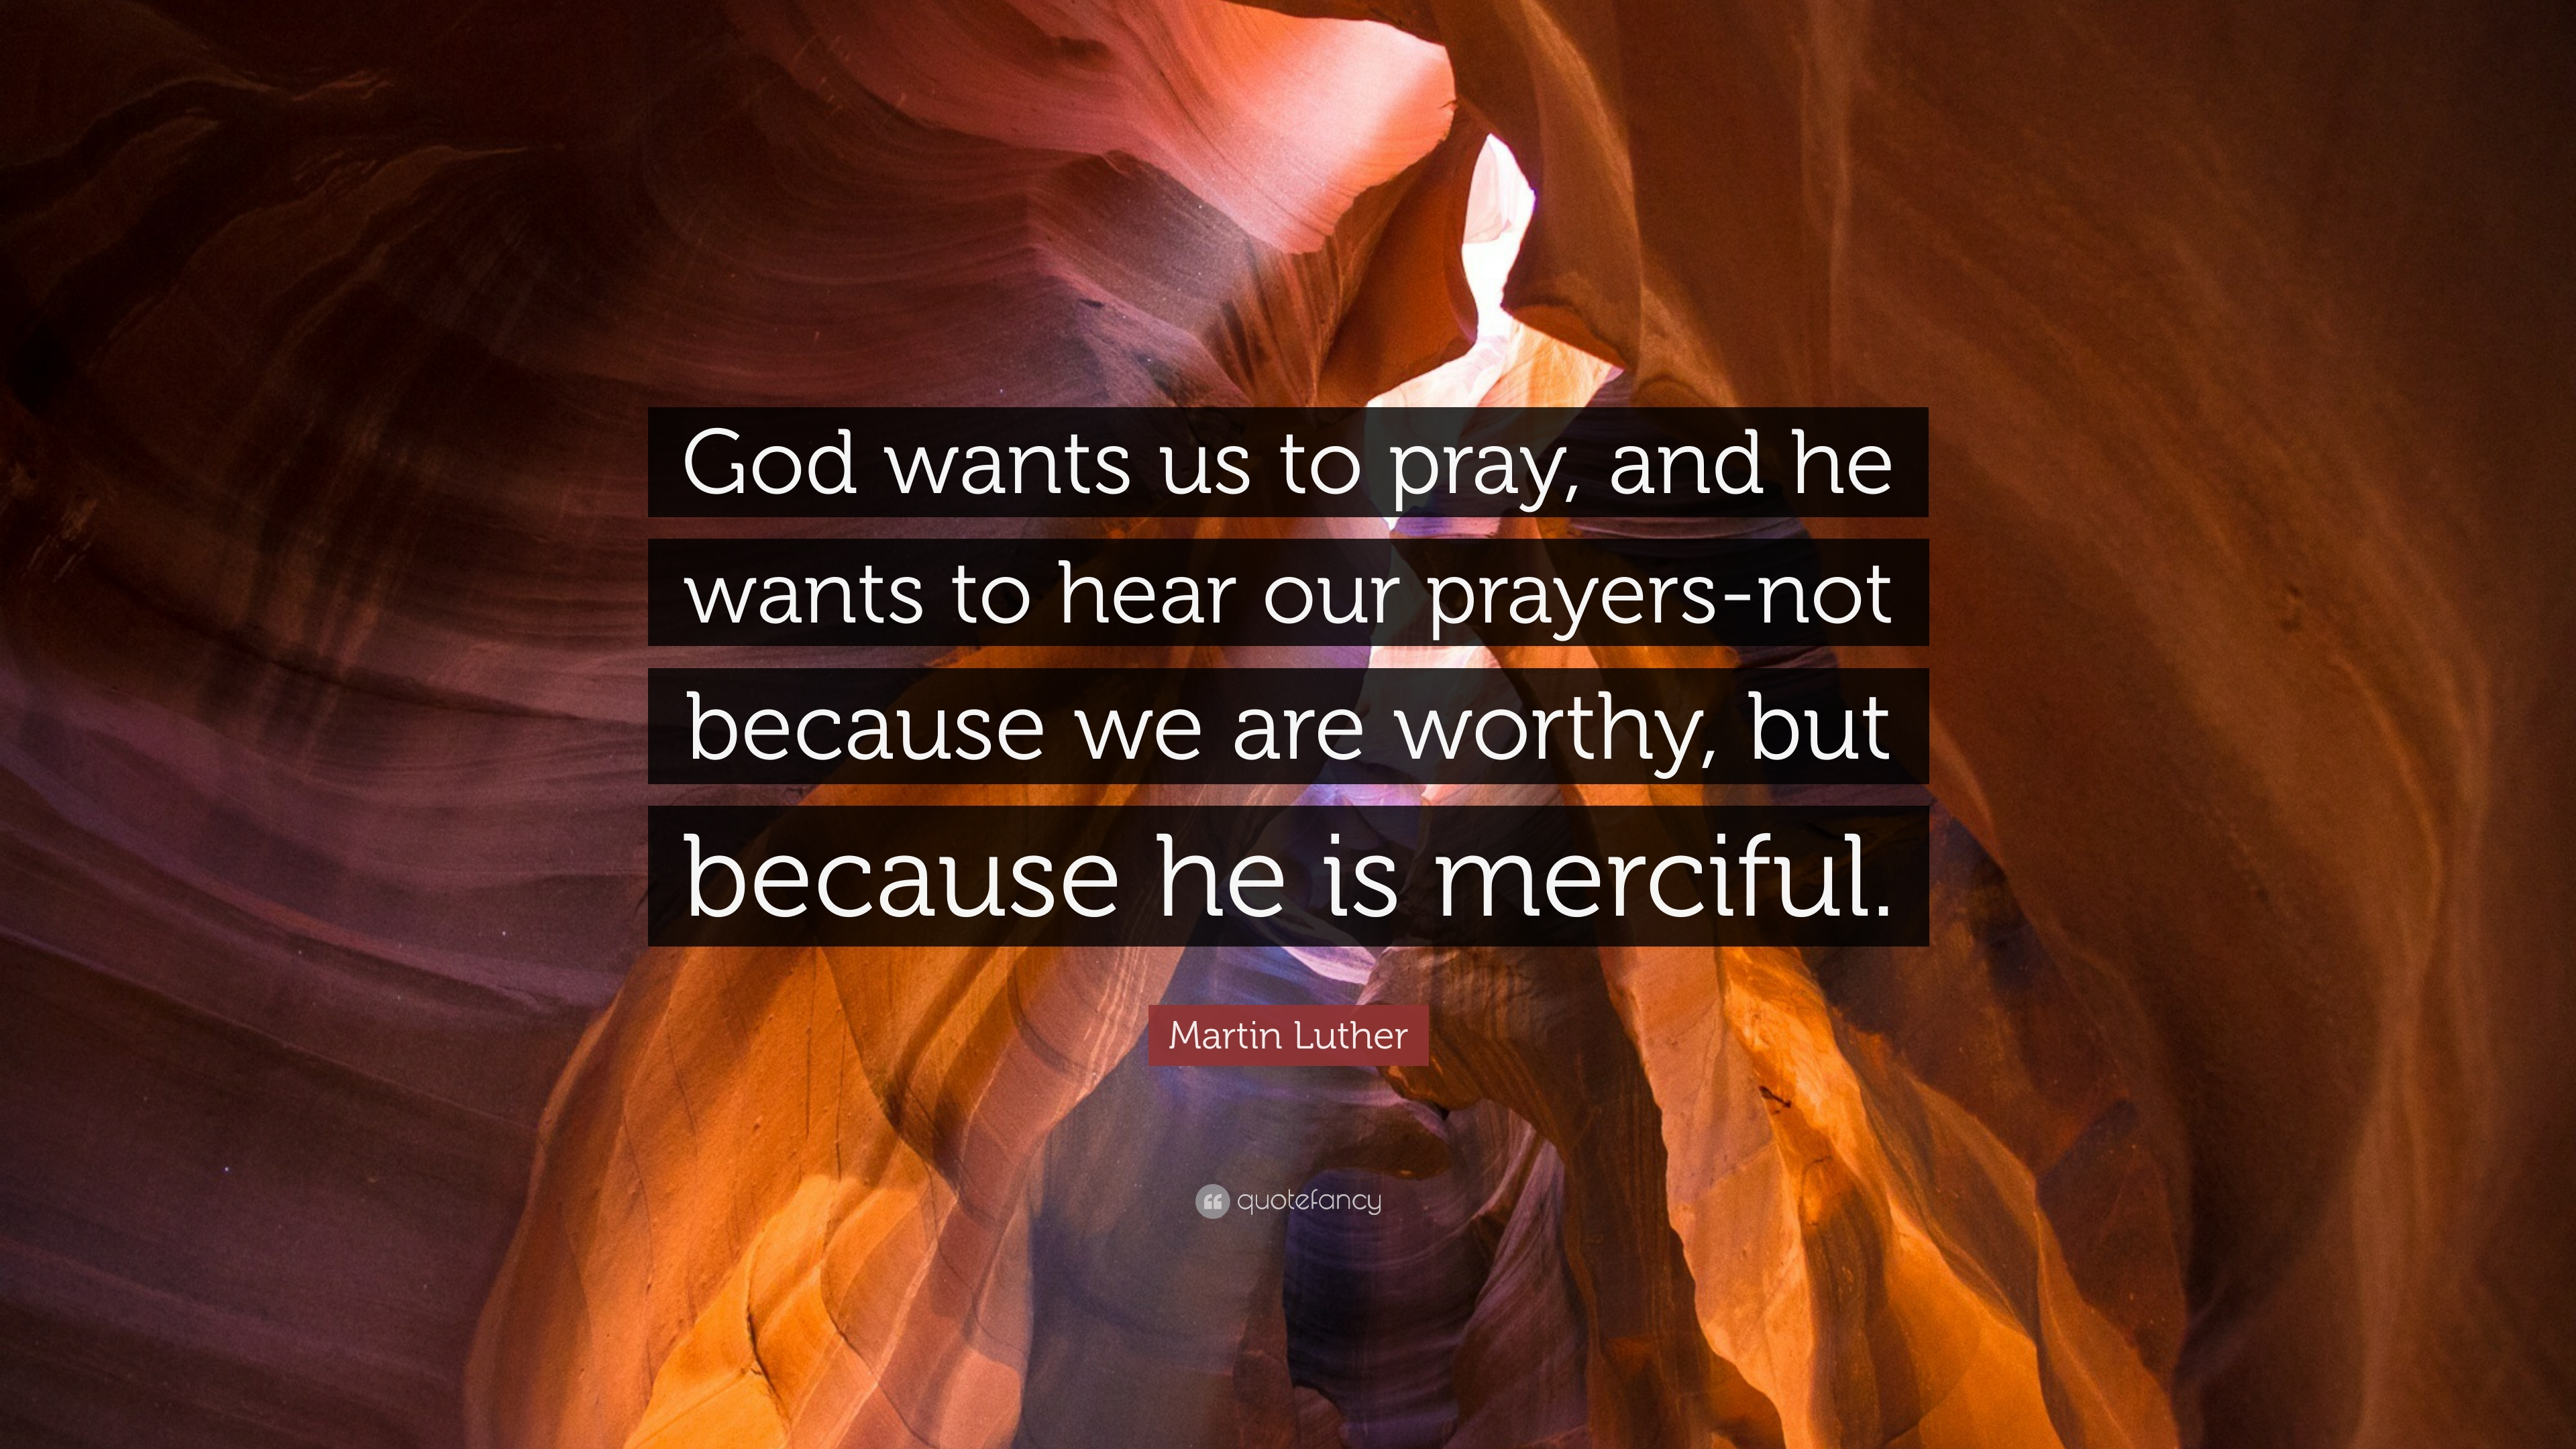 Martin Luther Quote: God wants us to pray, and he wants